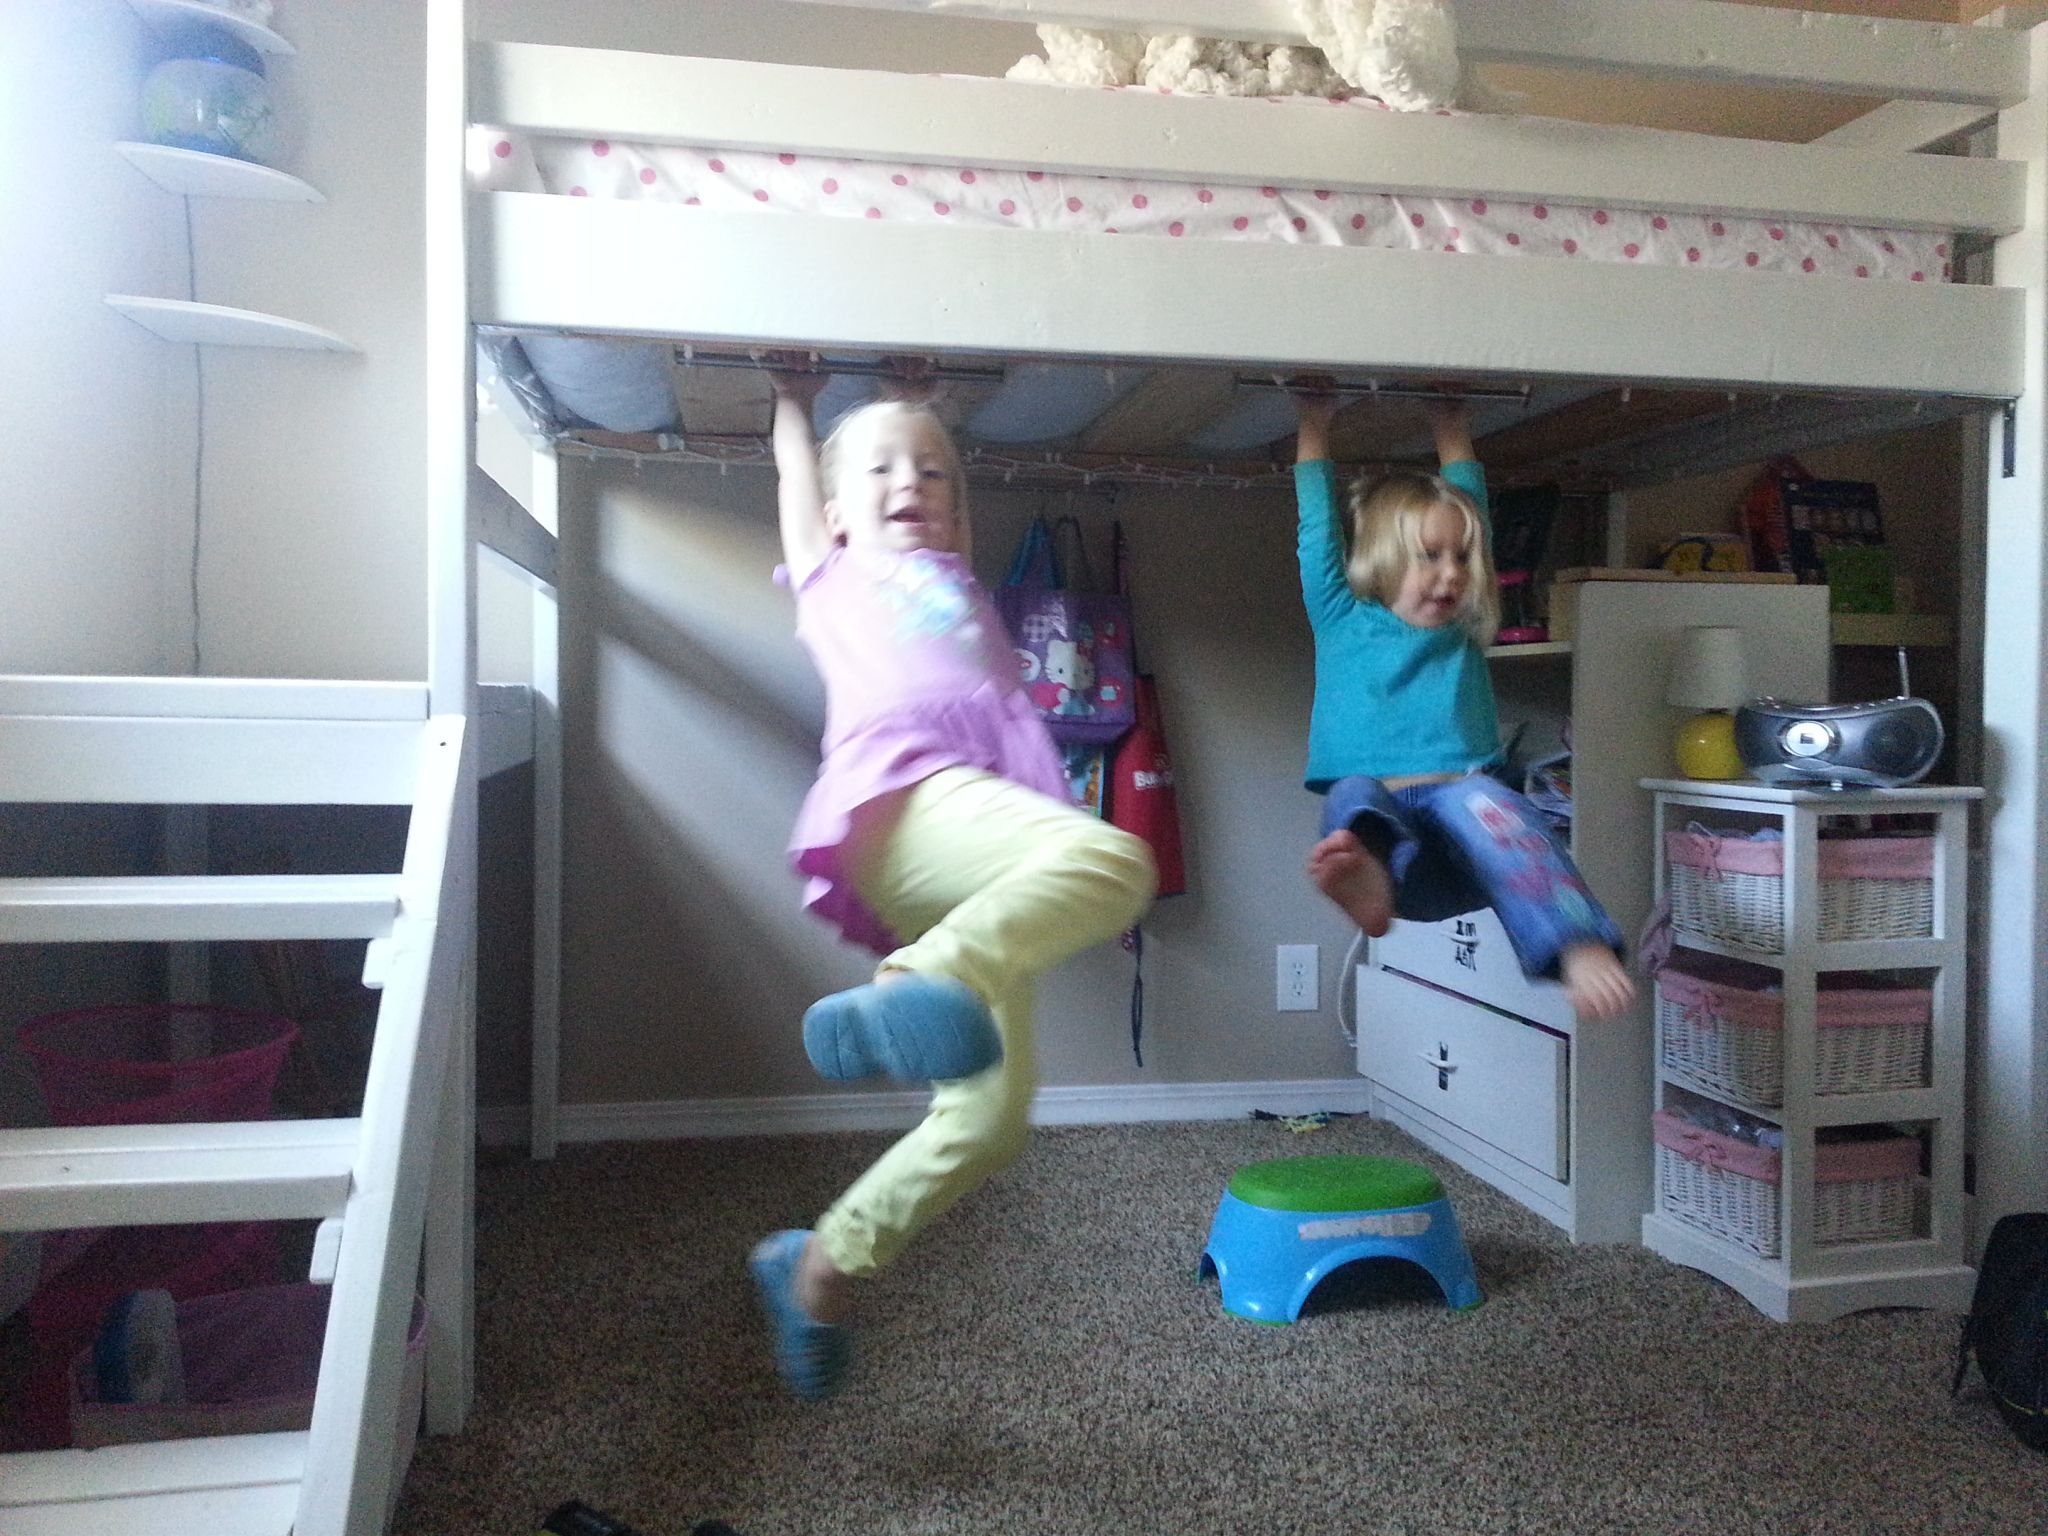 Diy Twin Loft Bed For Under 100 With Images Diy Loft Bed